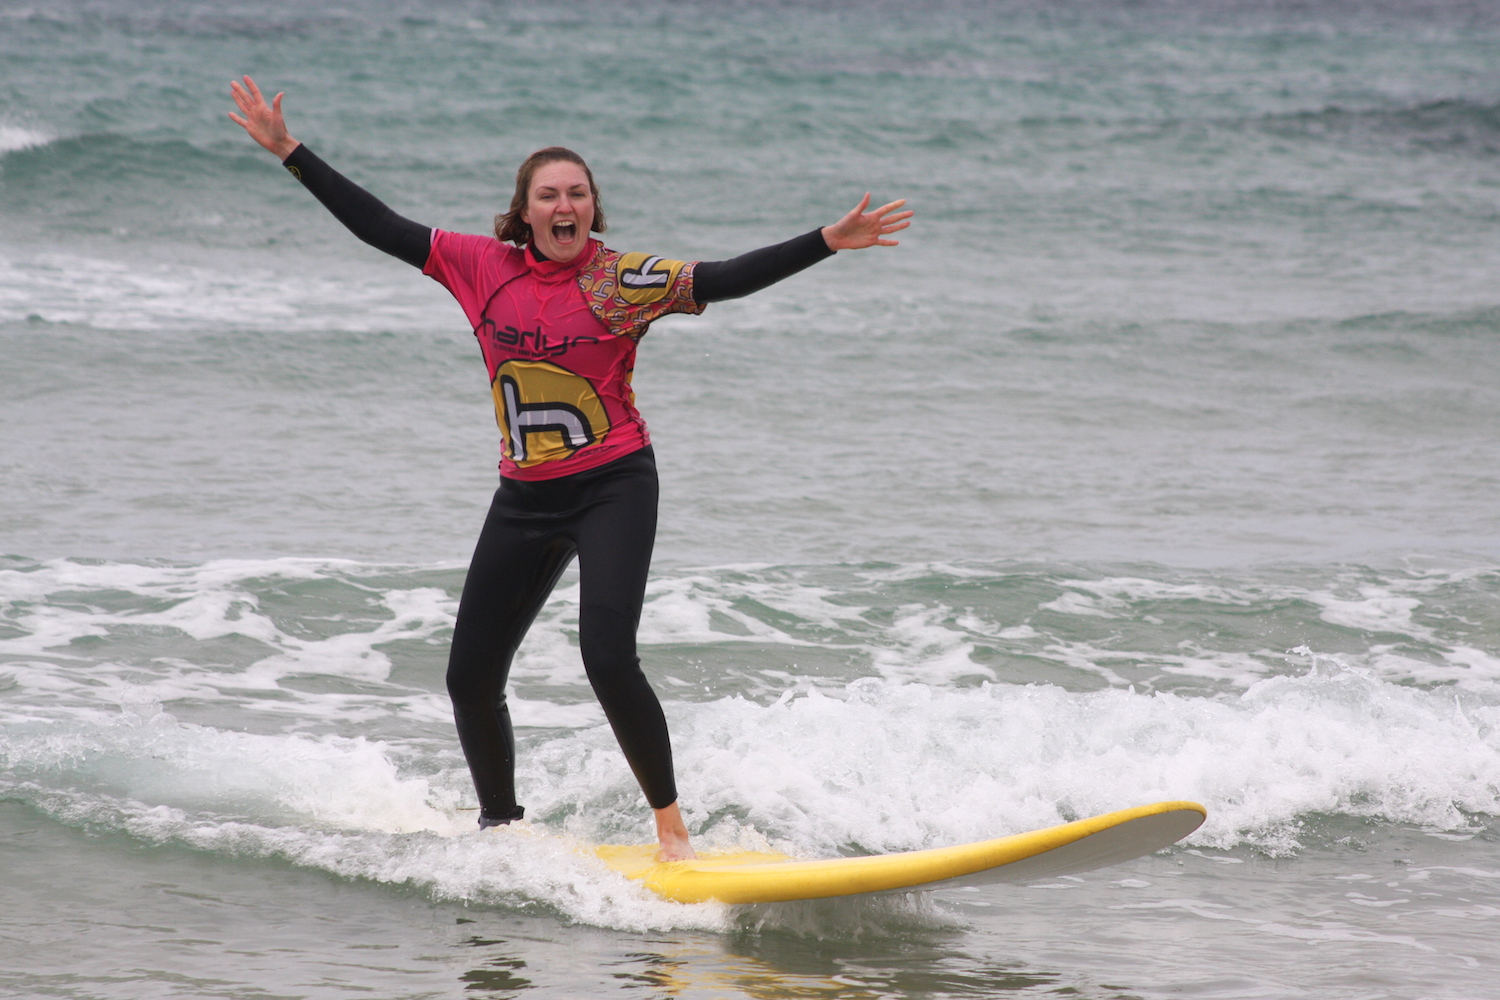 ride-on-retreats-happy-surf-girl.JPG